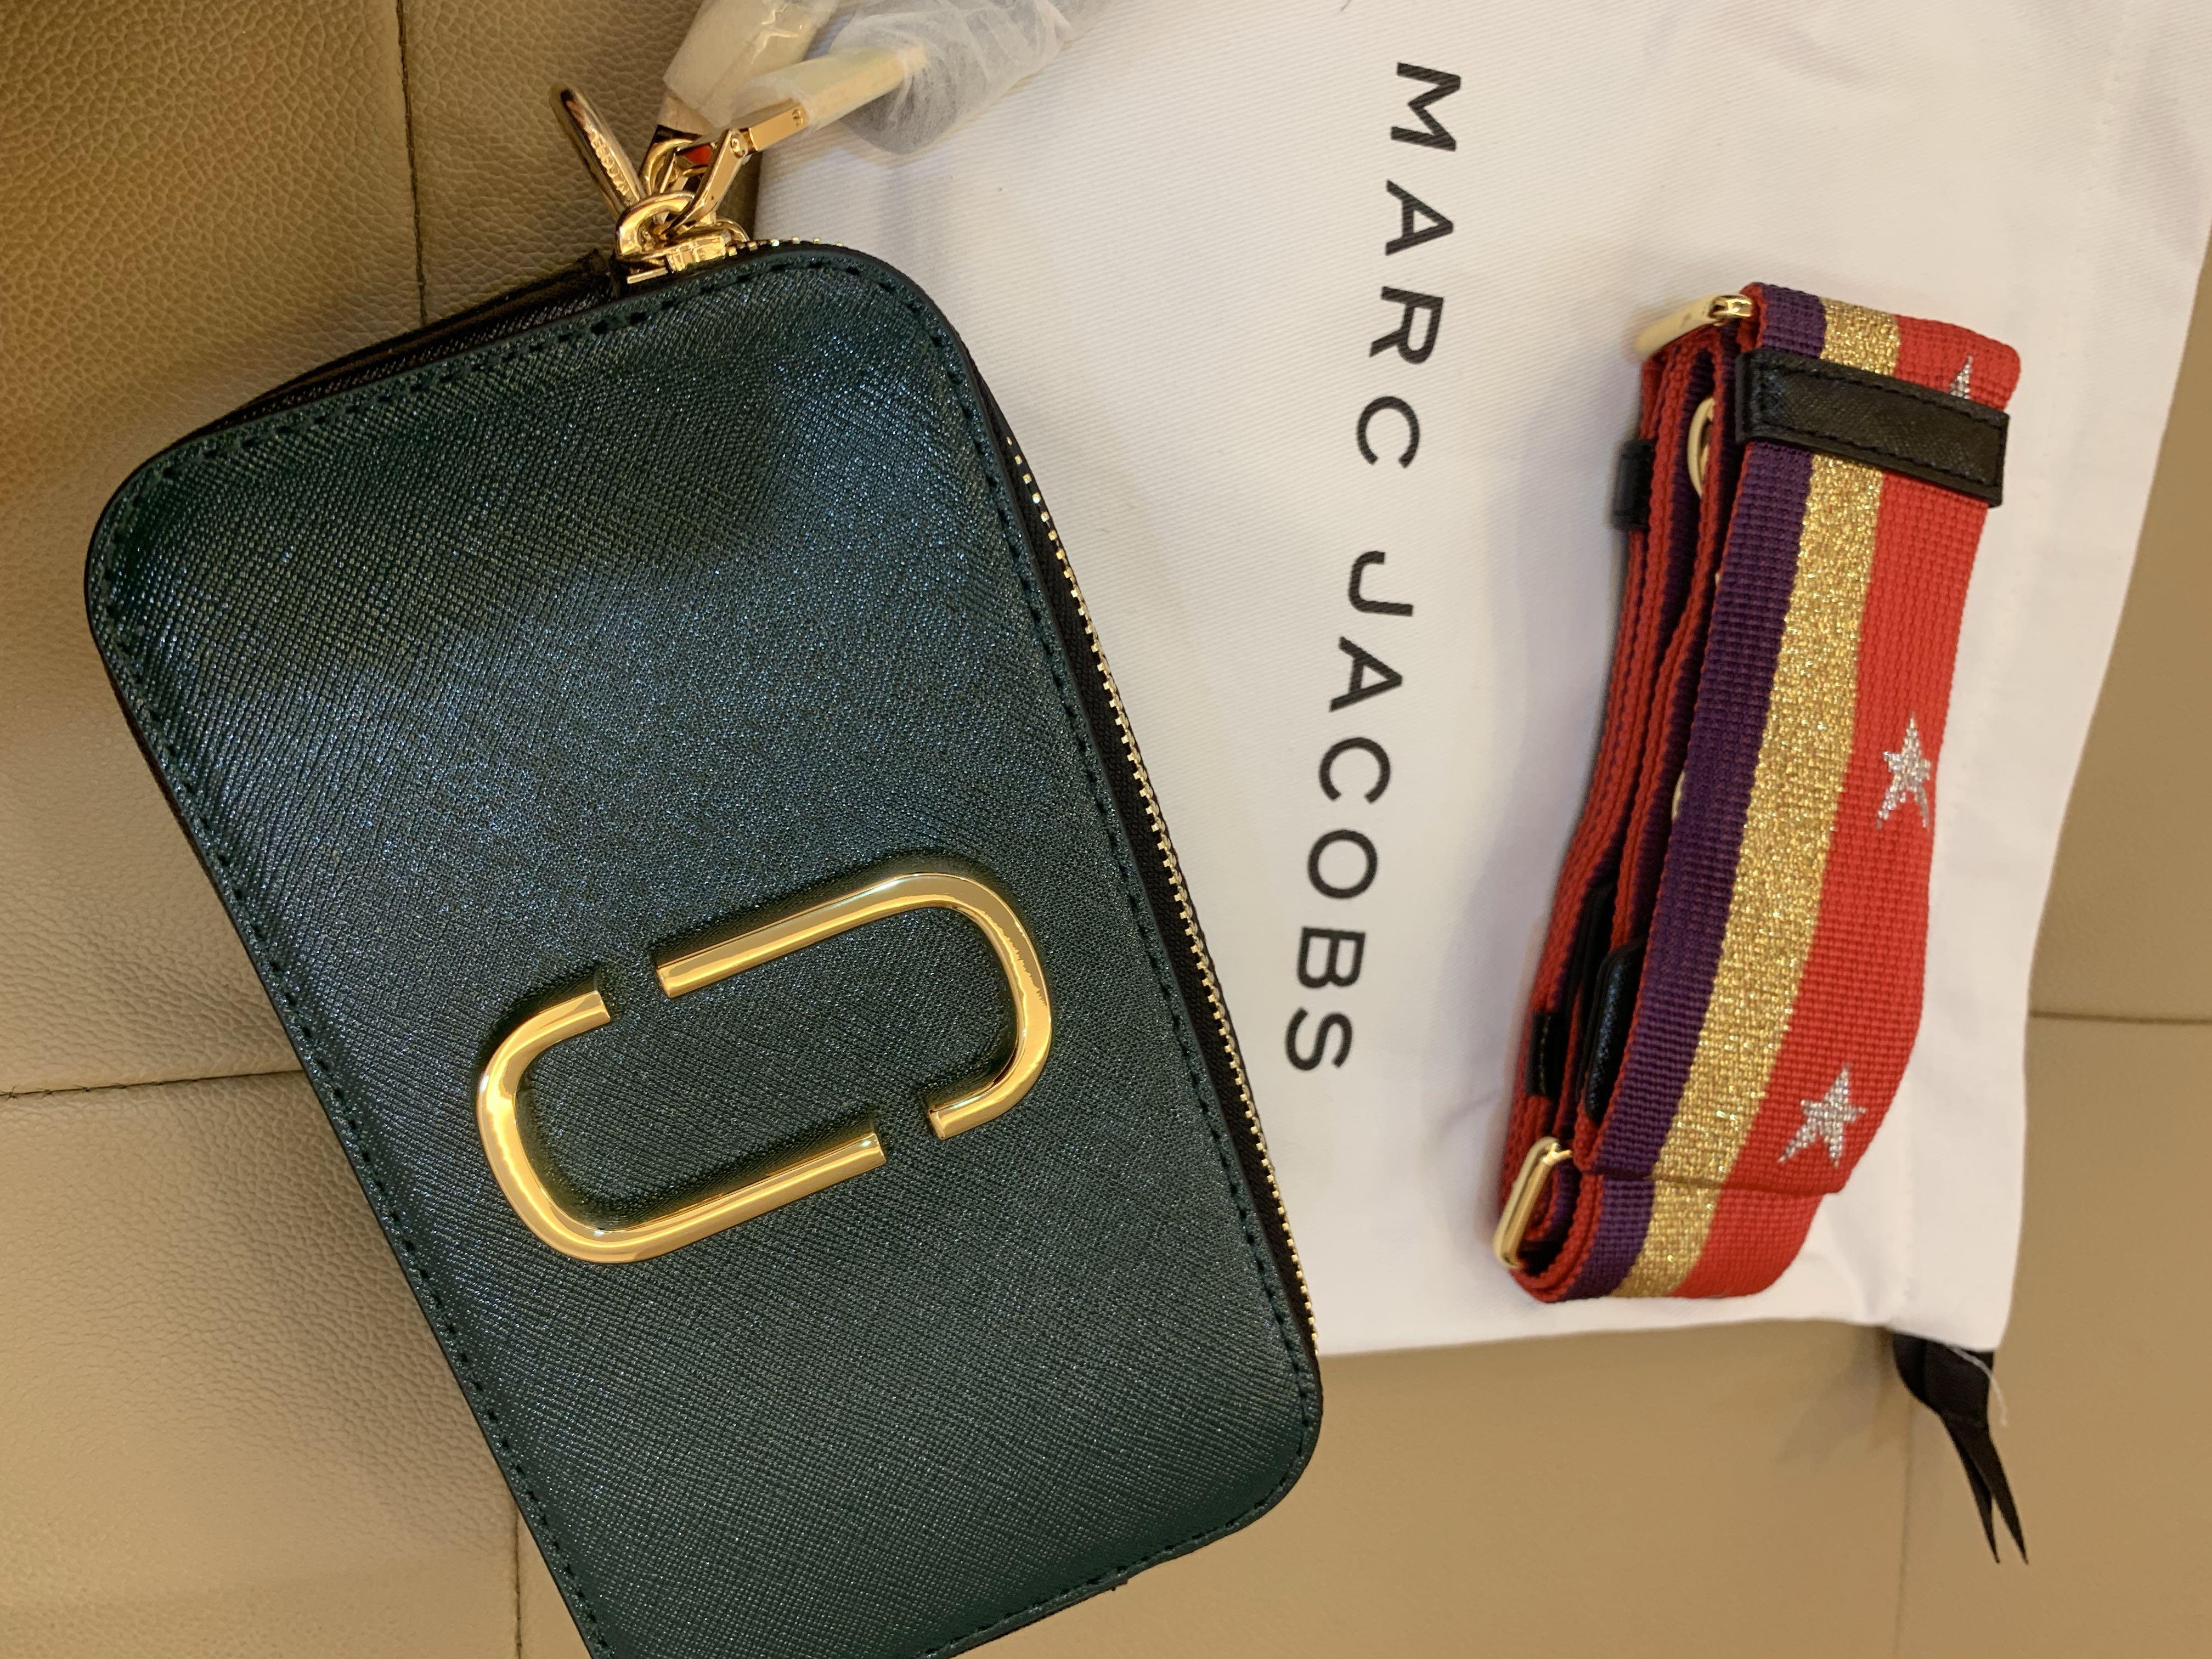 Ready Stock Authentic Marc Jacobs snapshot camera bag green